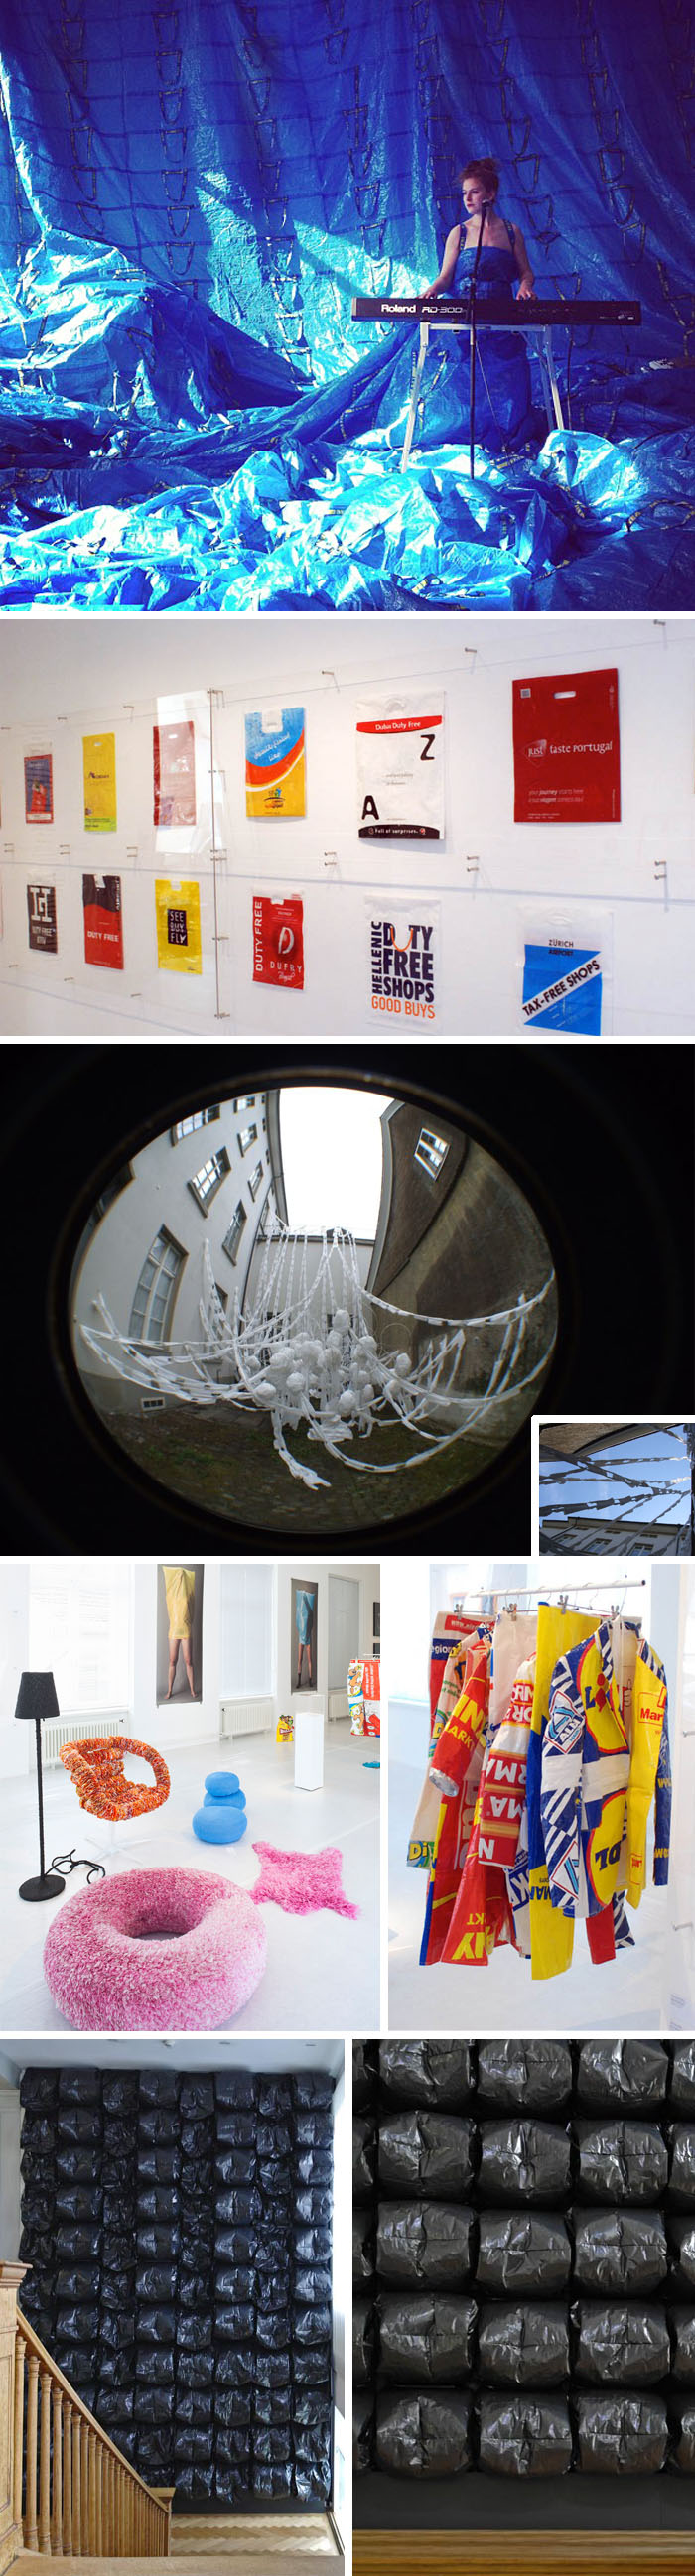 Plastic bag exhibit, art installations, products, photographs, made with plastic bags